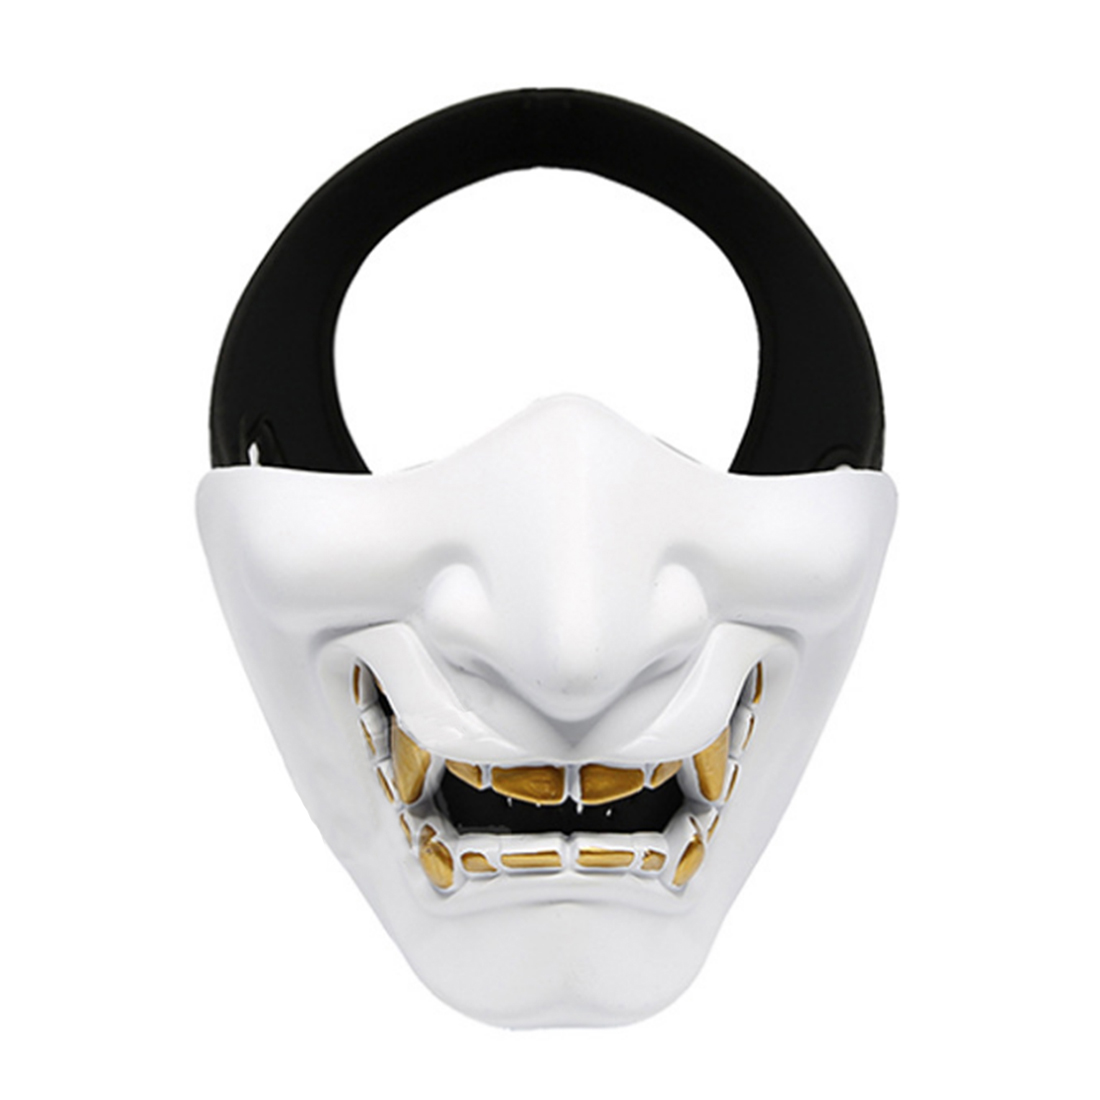 Tactical Airsoft Mask Cool Half-Face Paintball Mask Attractive Masquerade Party Face Cover Prop halloween masks horror Supplies